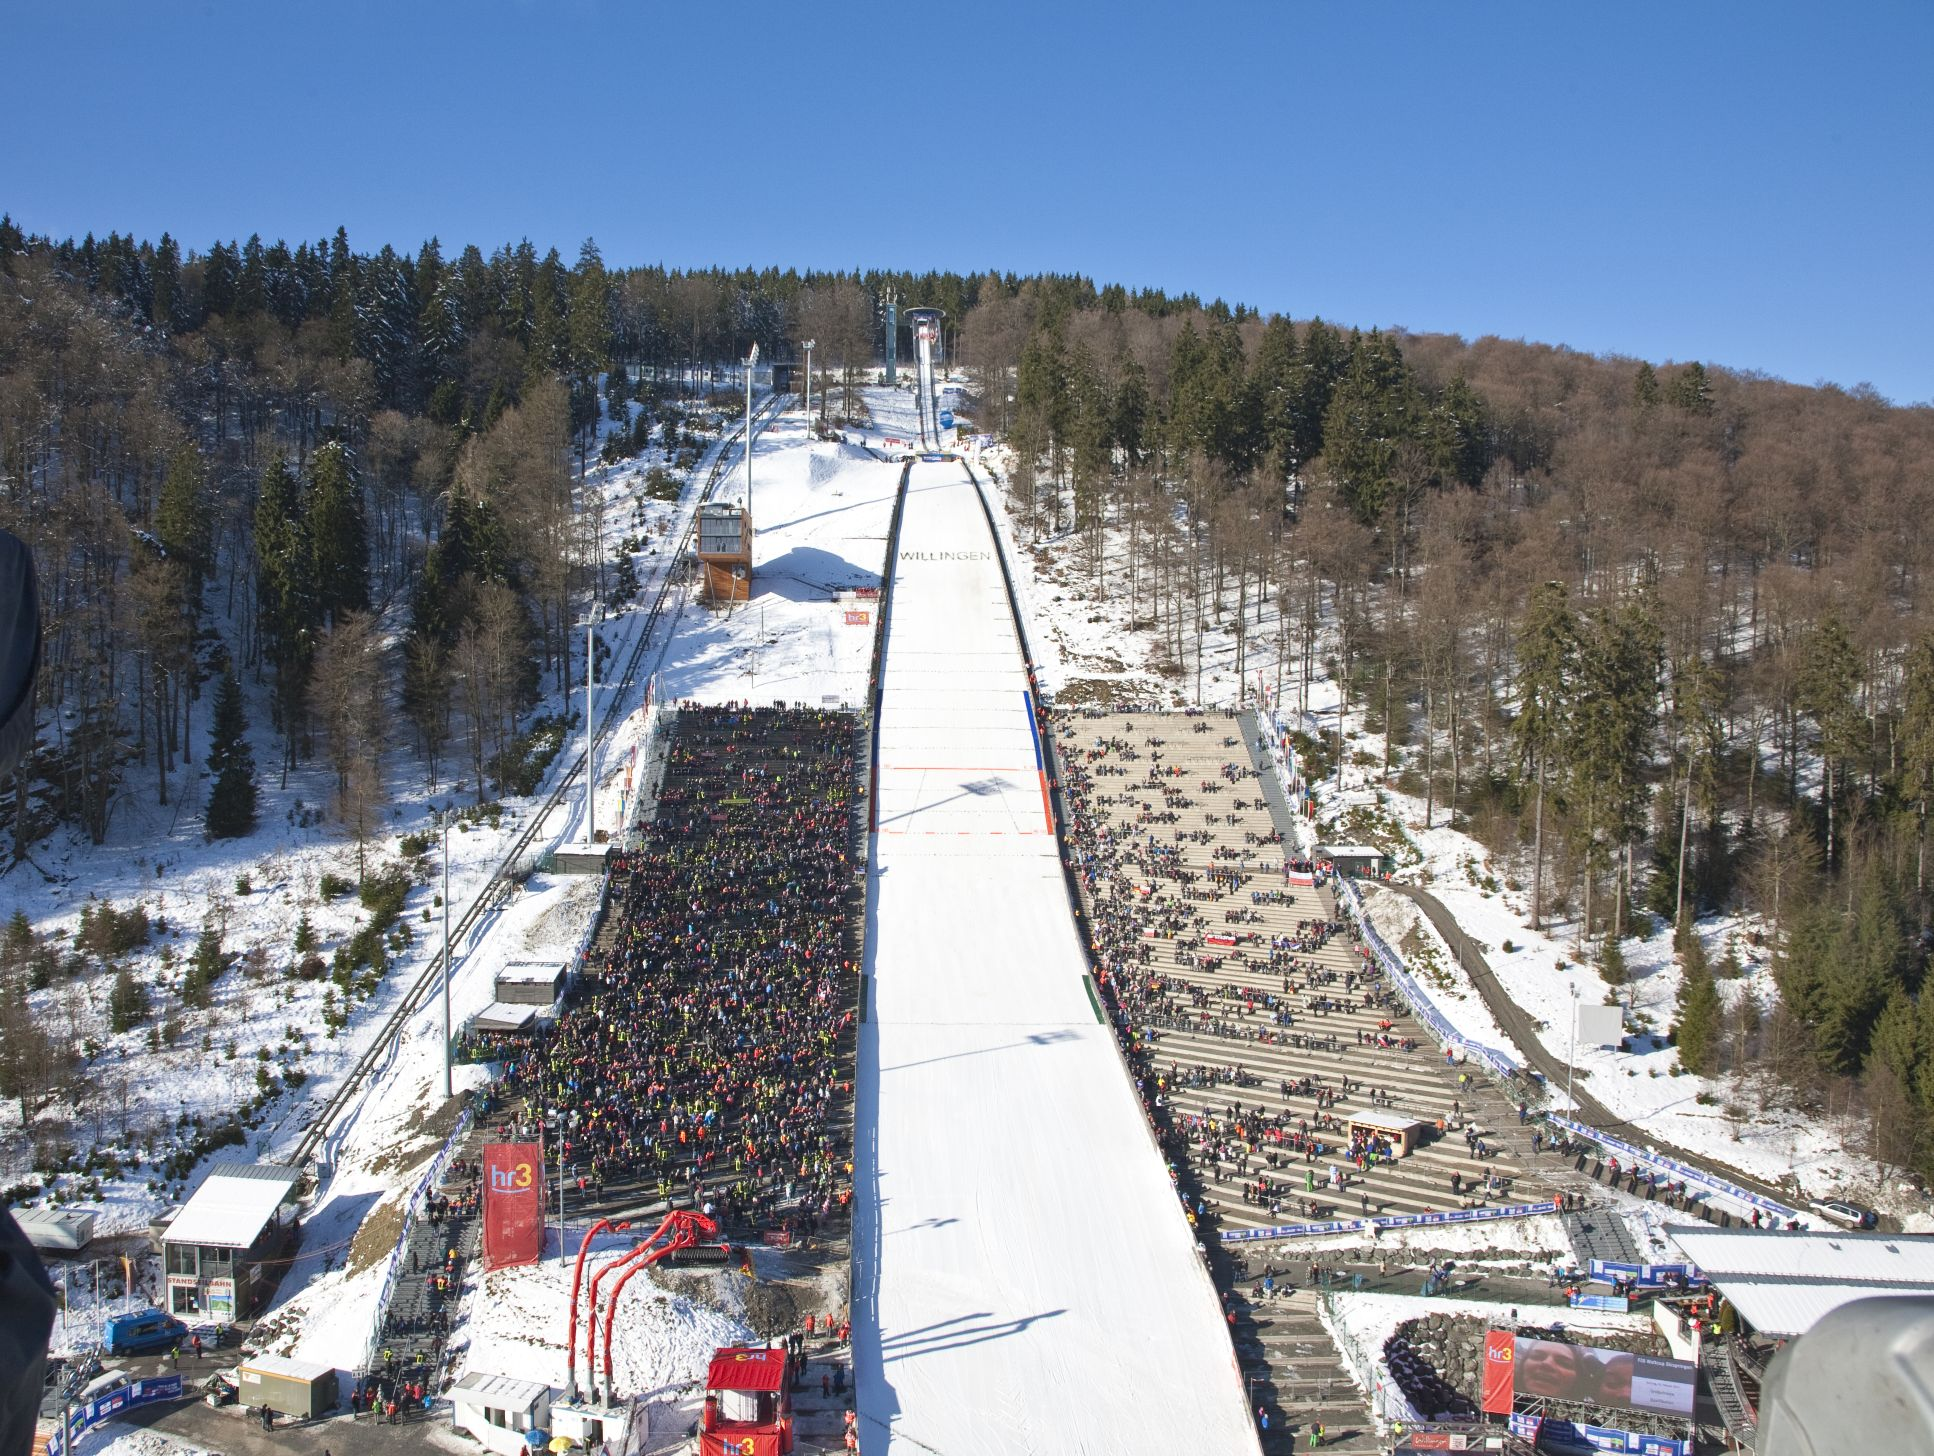 Die Mühlenkopfschanze im Winter ©Tourist-Information Willingen